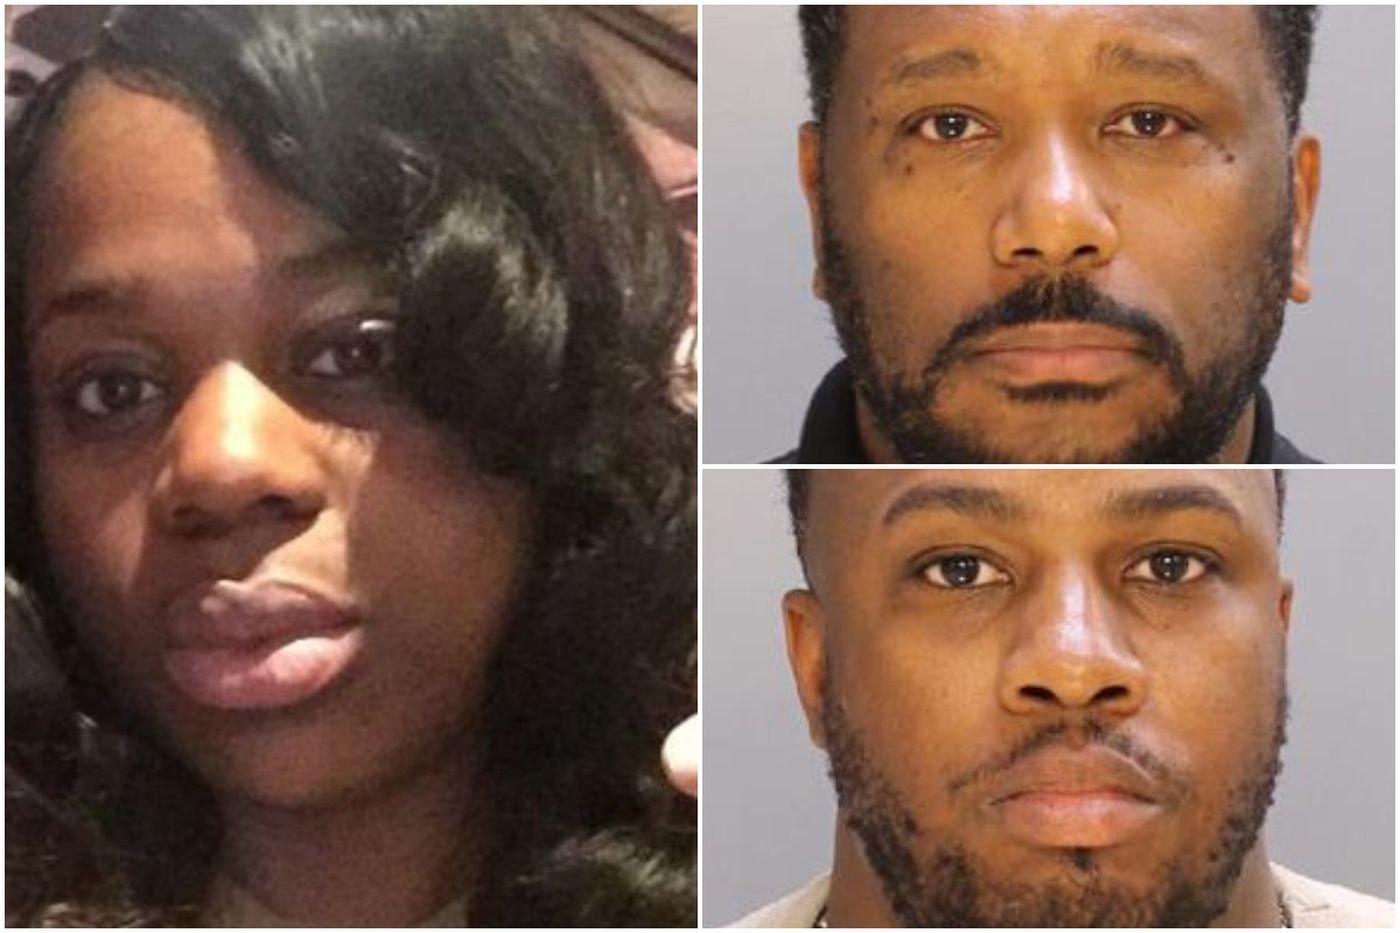 2 ex-Temple cops ordered to spend decades in prison for 2016 beating death of woman